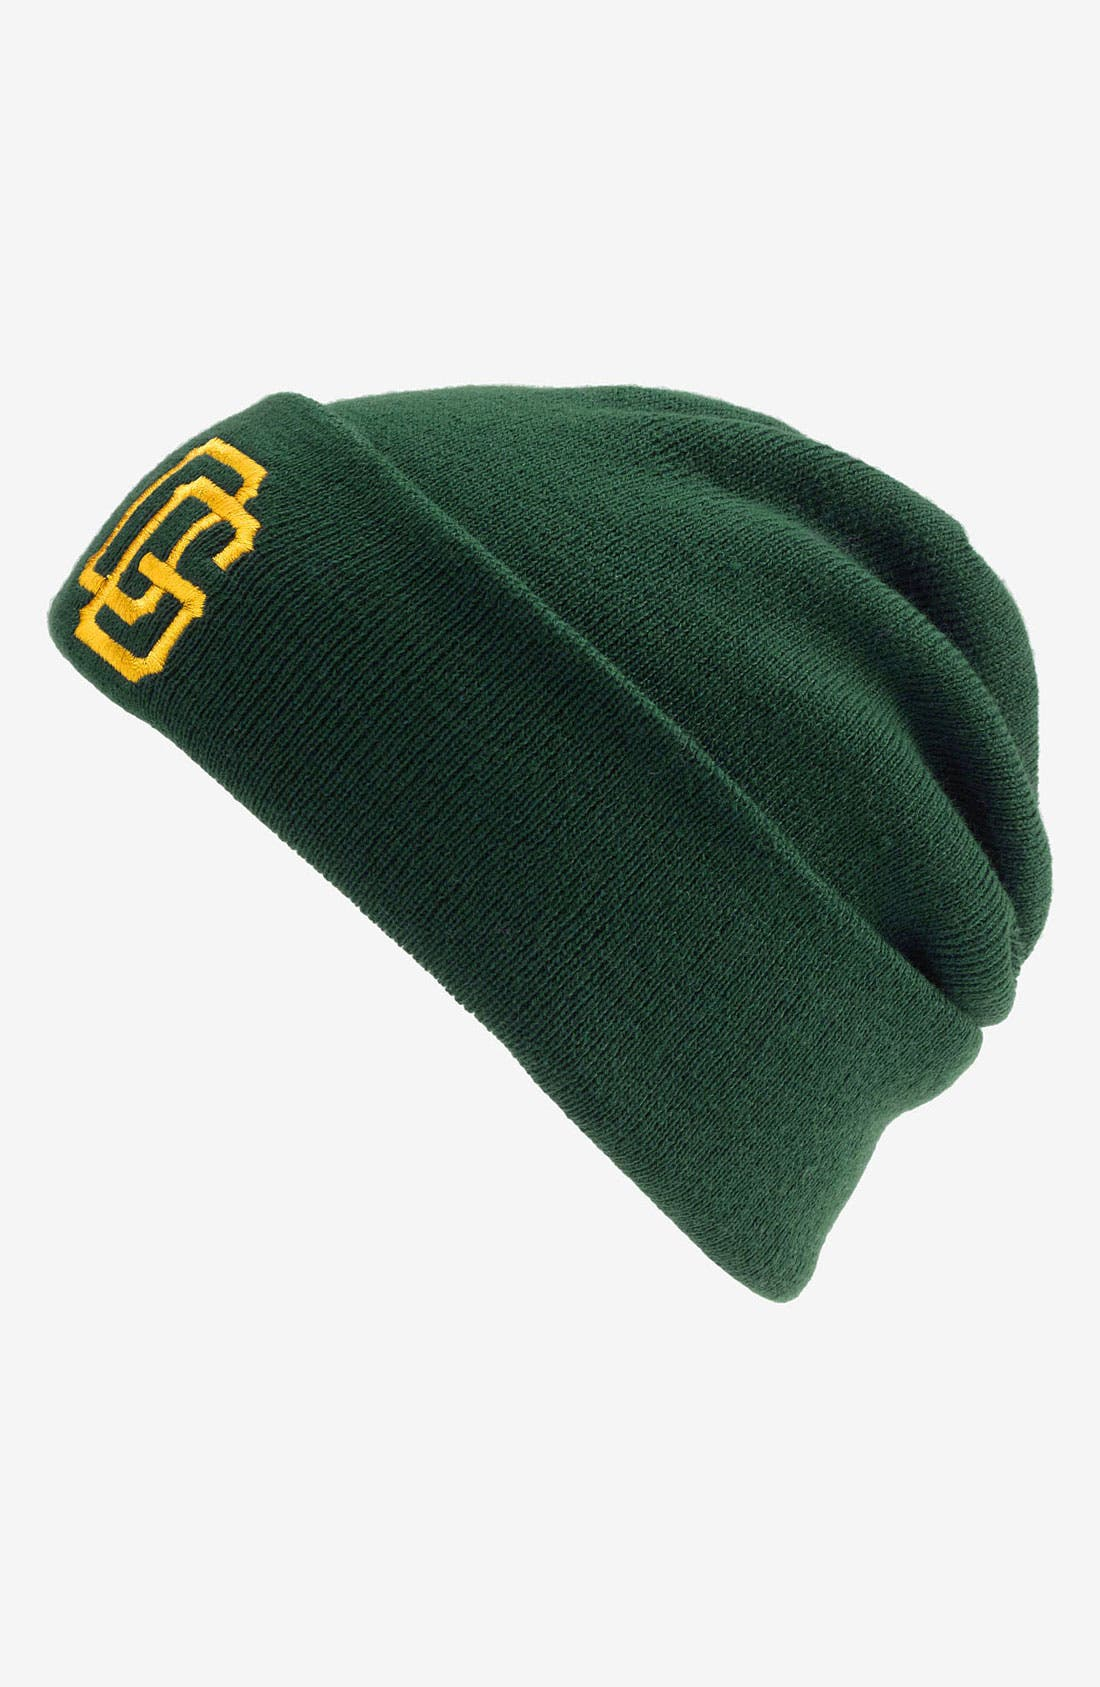 Main Image - Obey 'Double OG' Knit Cap